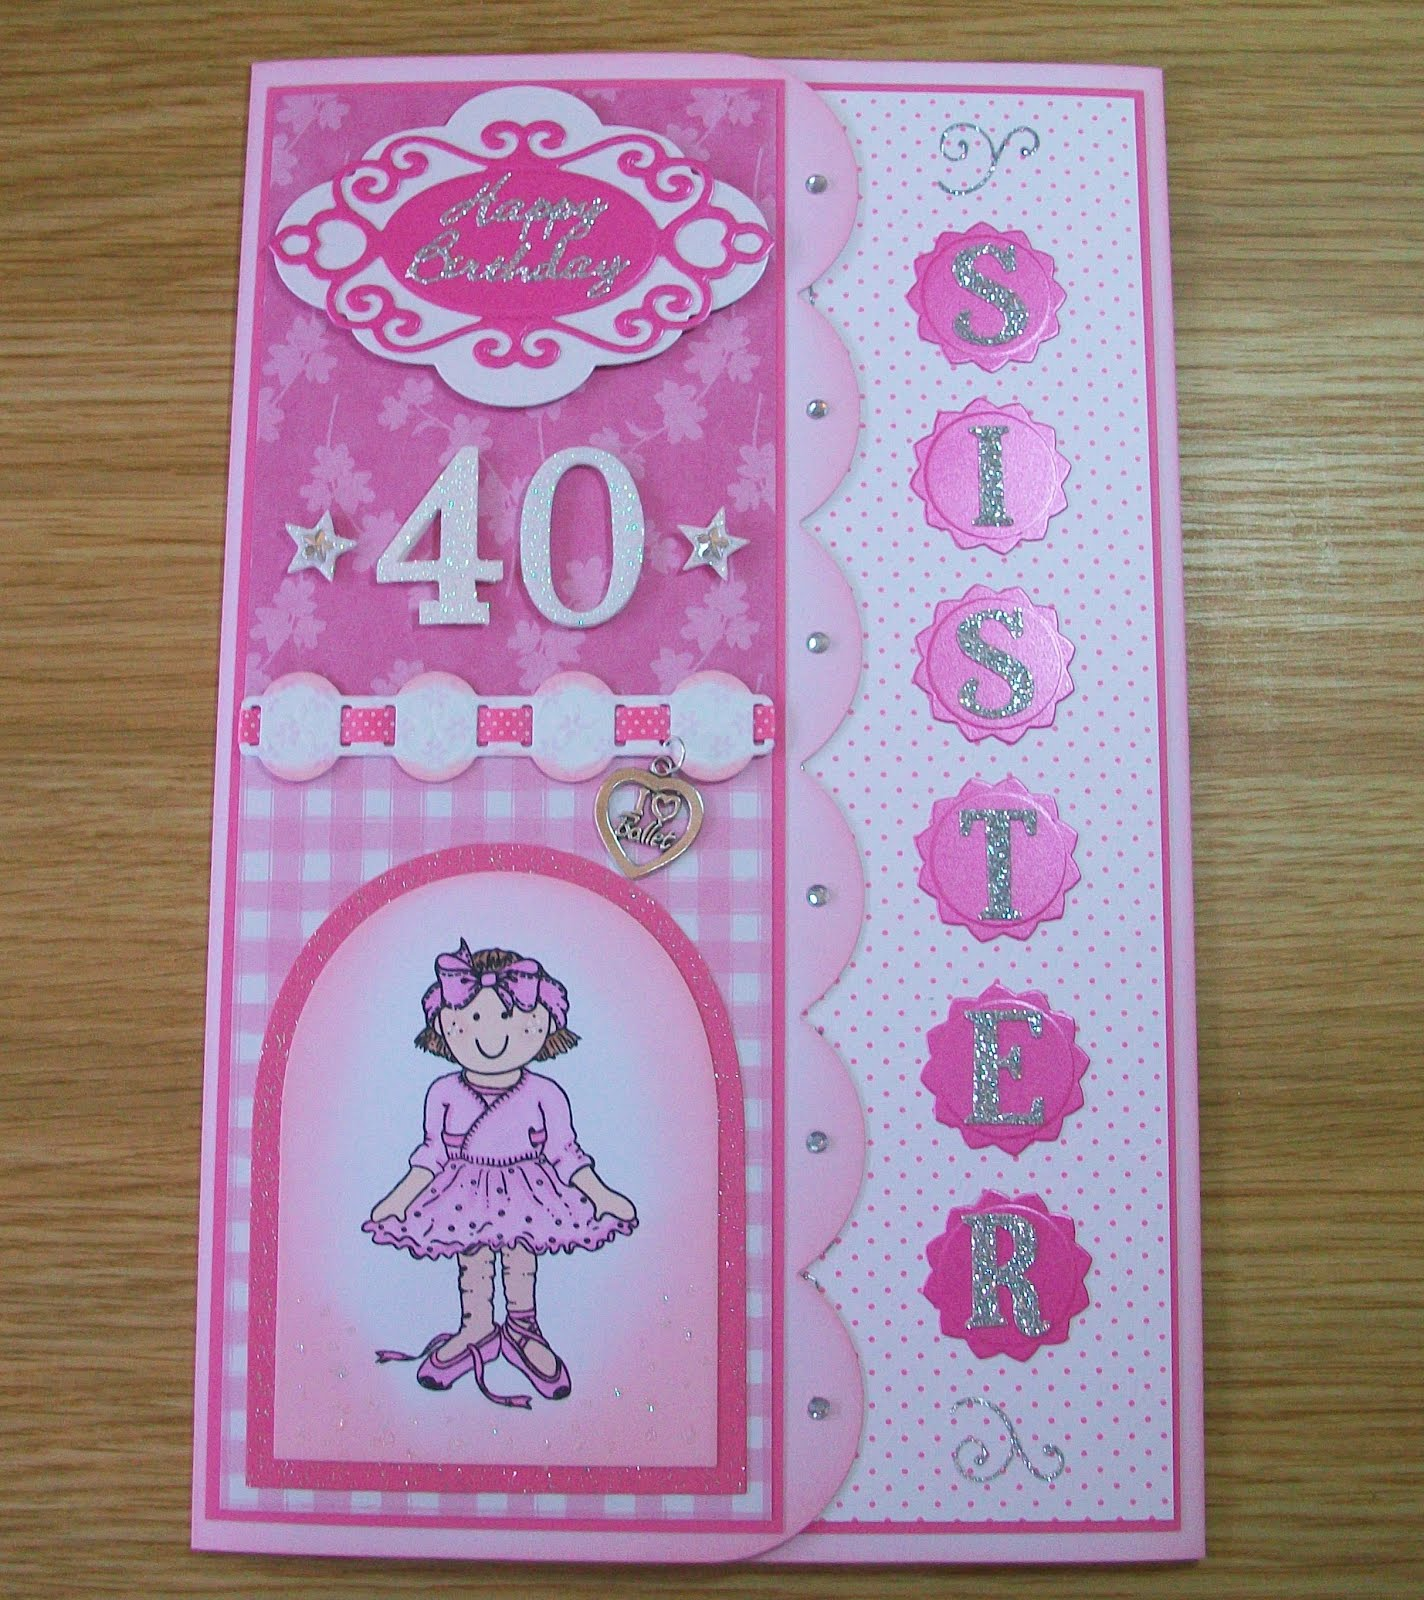 Crafty Minx This 40th Birthday Card winged it s way to